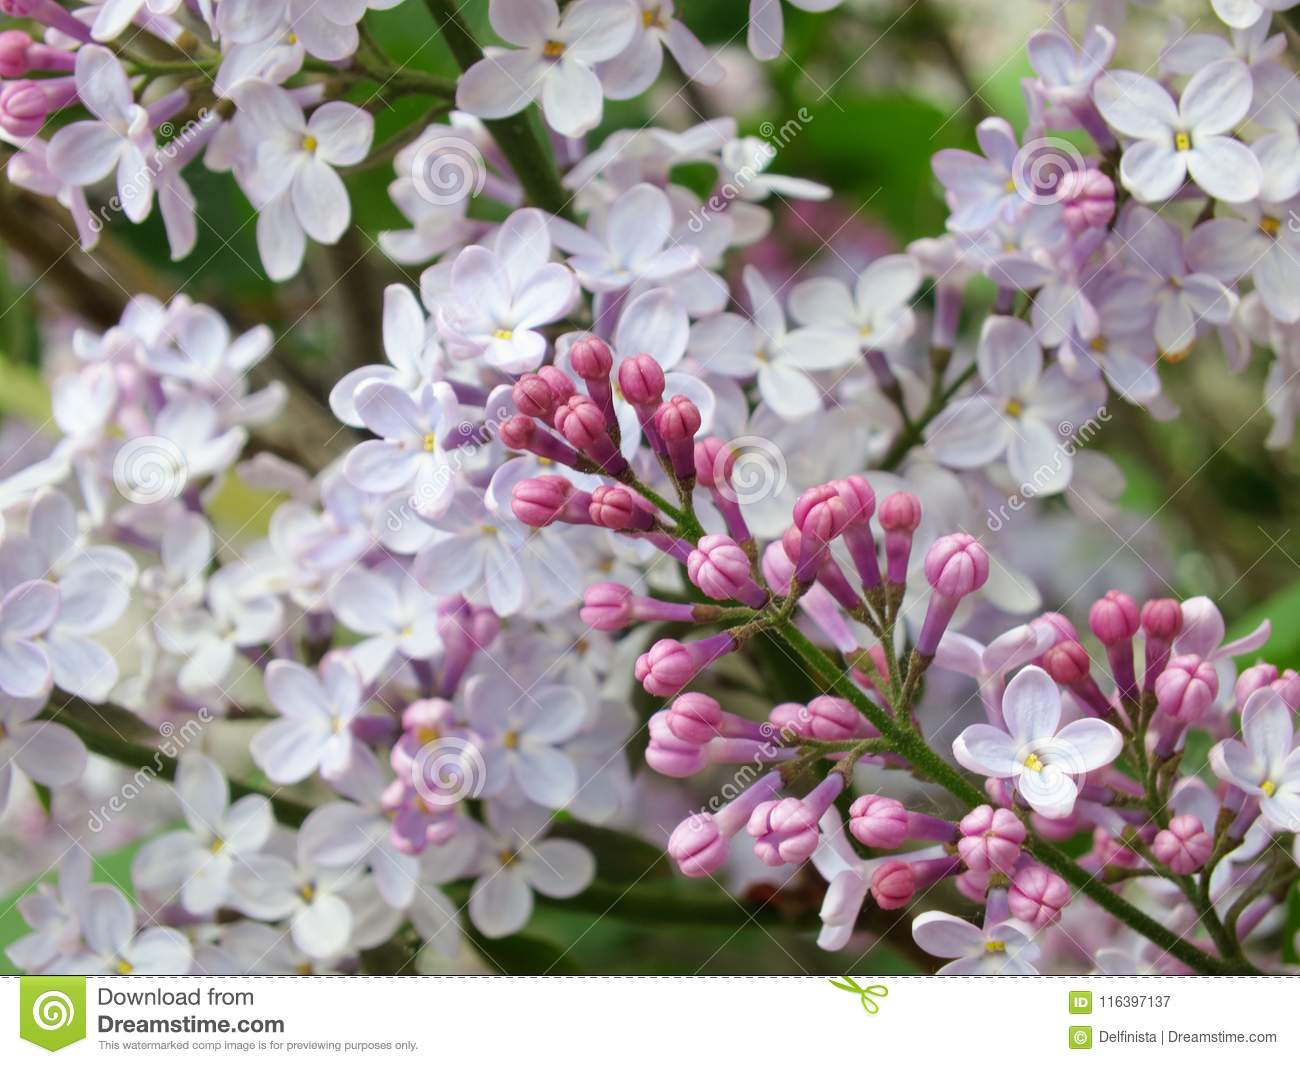 Lilac flowers stock photo stock image image of blue blossoming lilac flowers white flower background for spring pc desktop wallpaper mightylinksfo